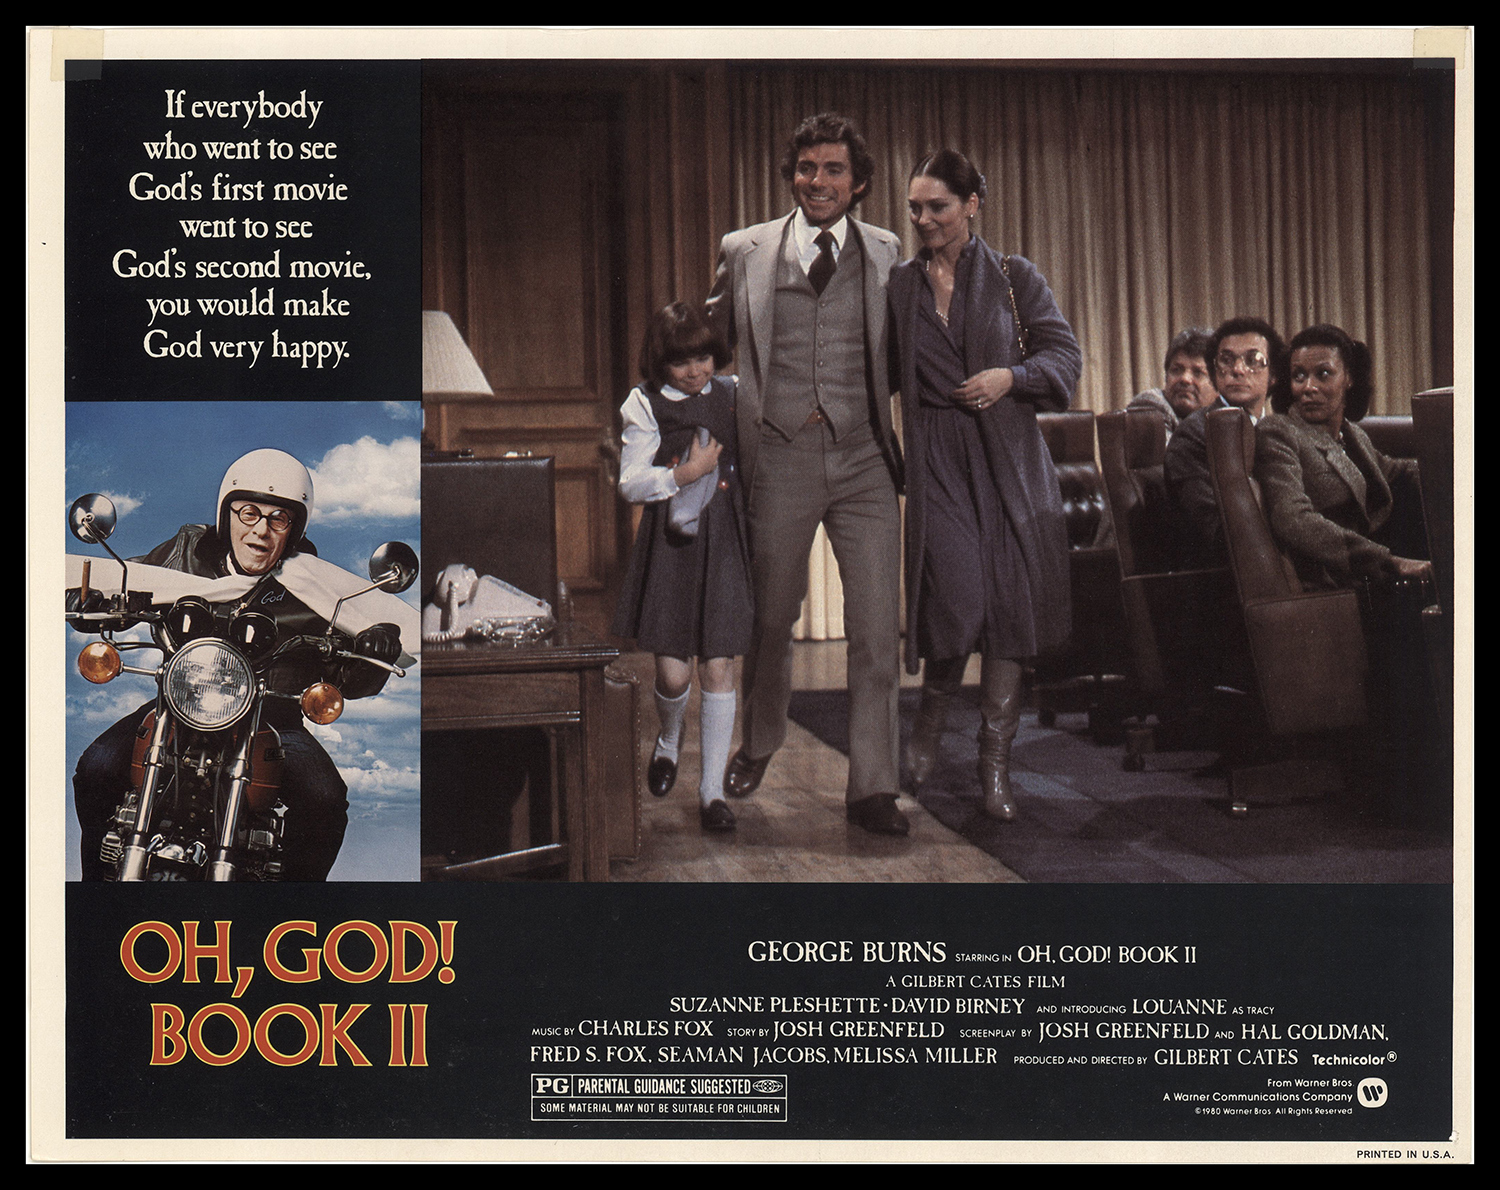 David Birney, Louanne, and Suzanne Pleshette in Oh, God! Book II (1980)